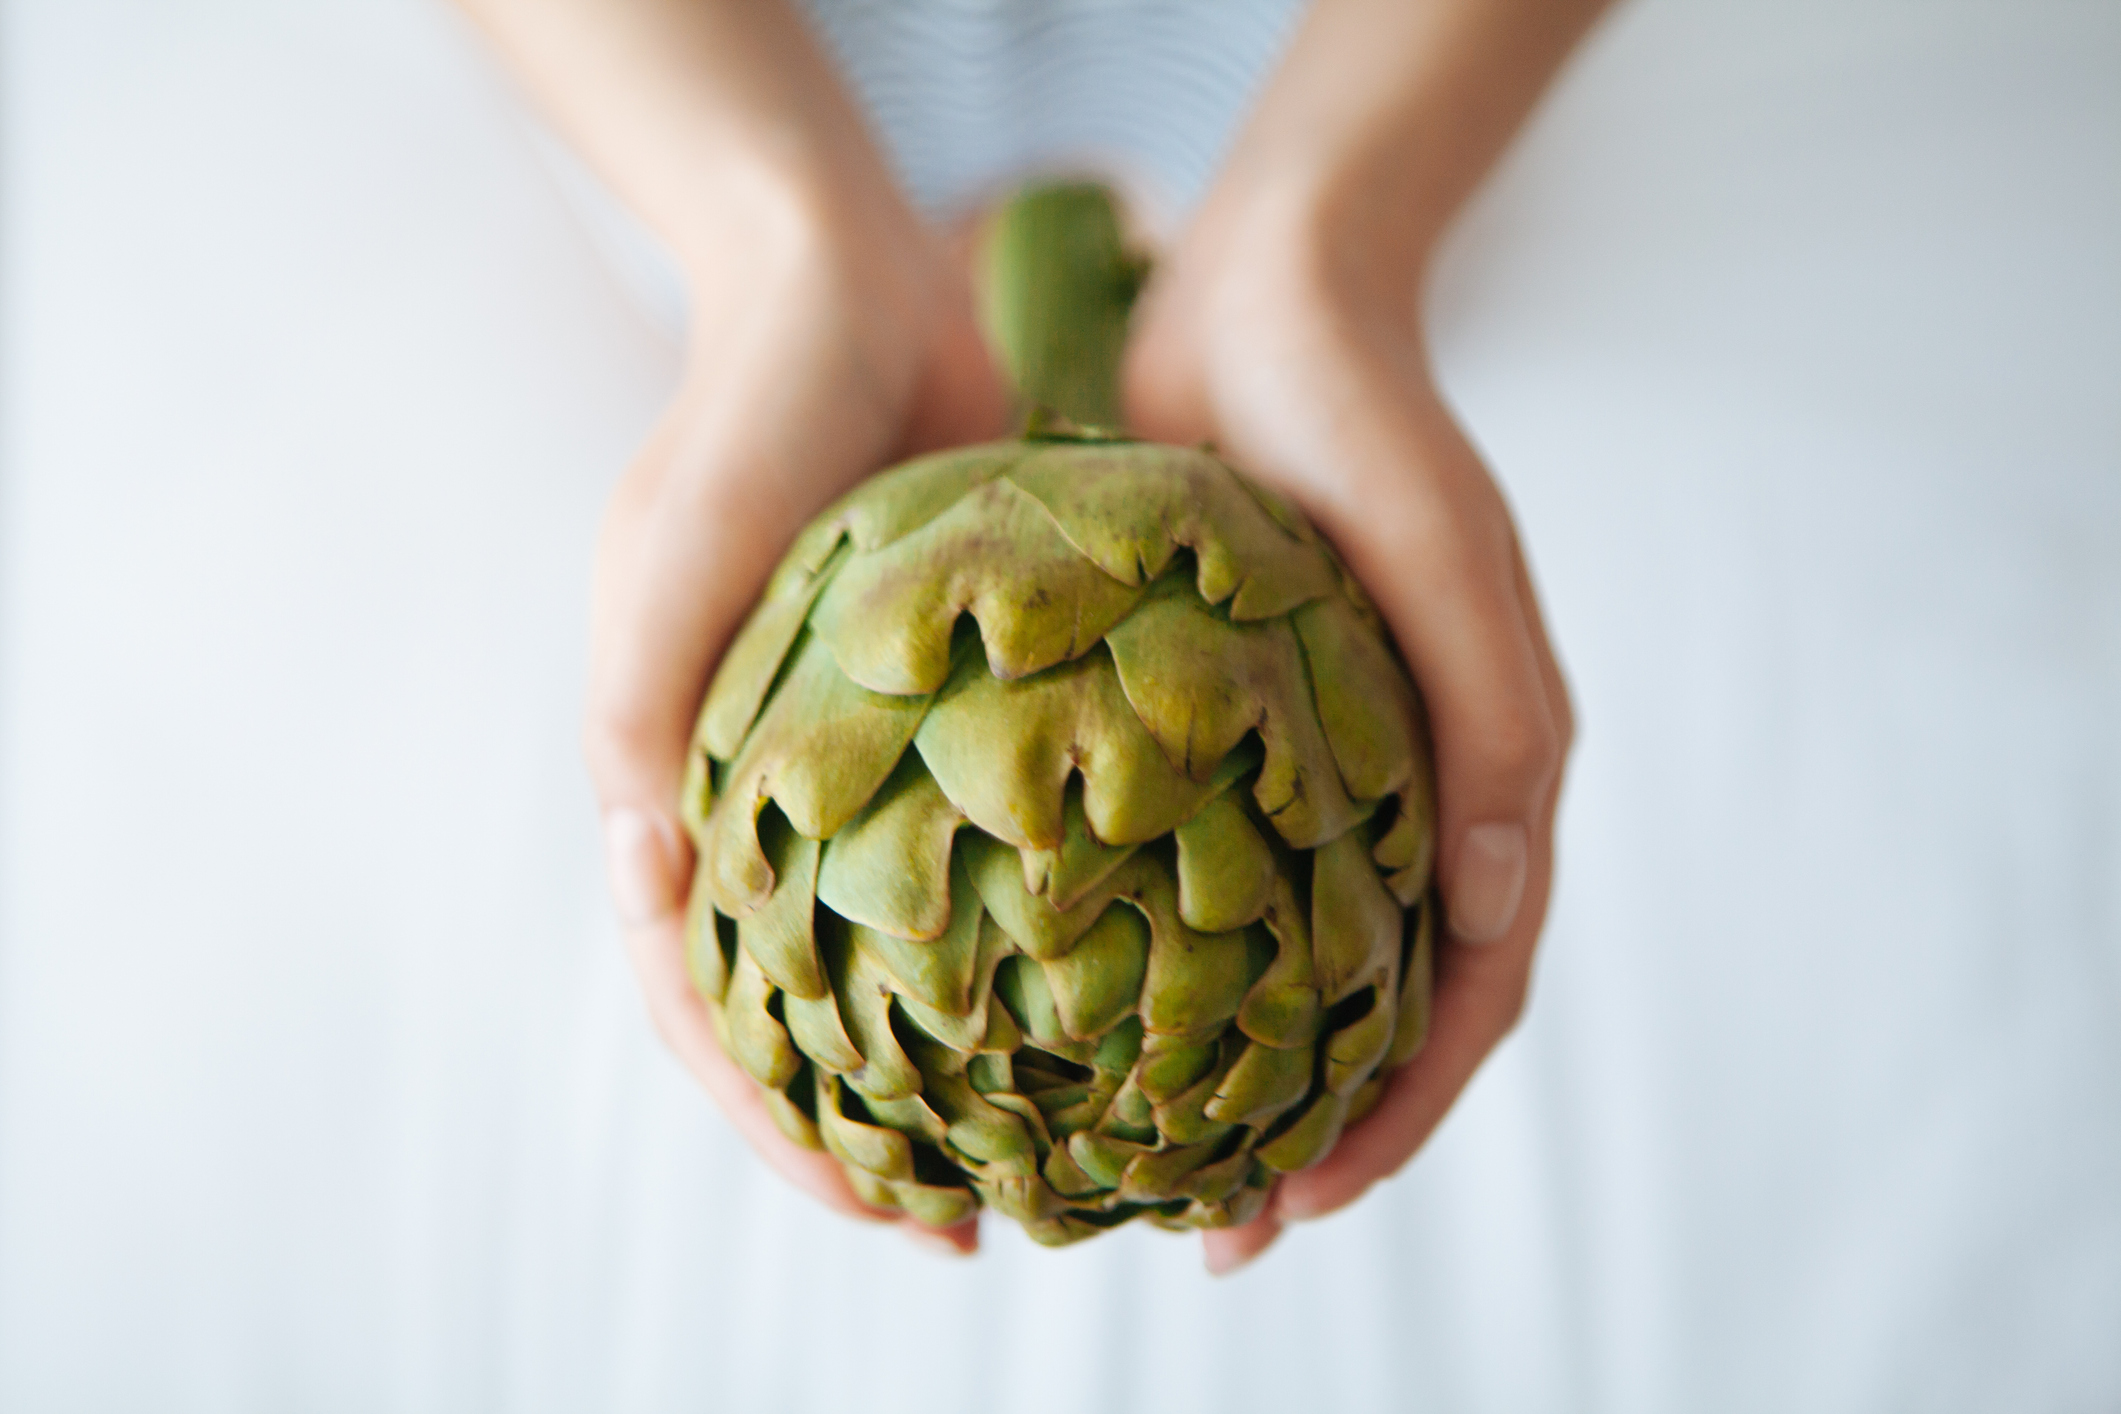 a young woman holding an artichoke in her hands